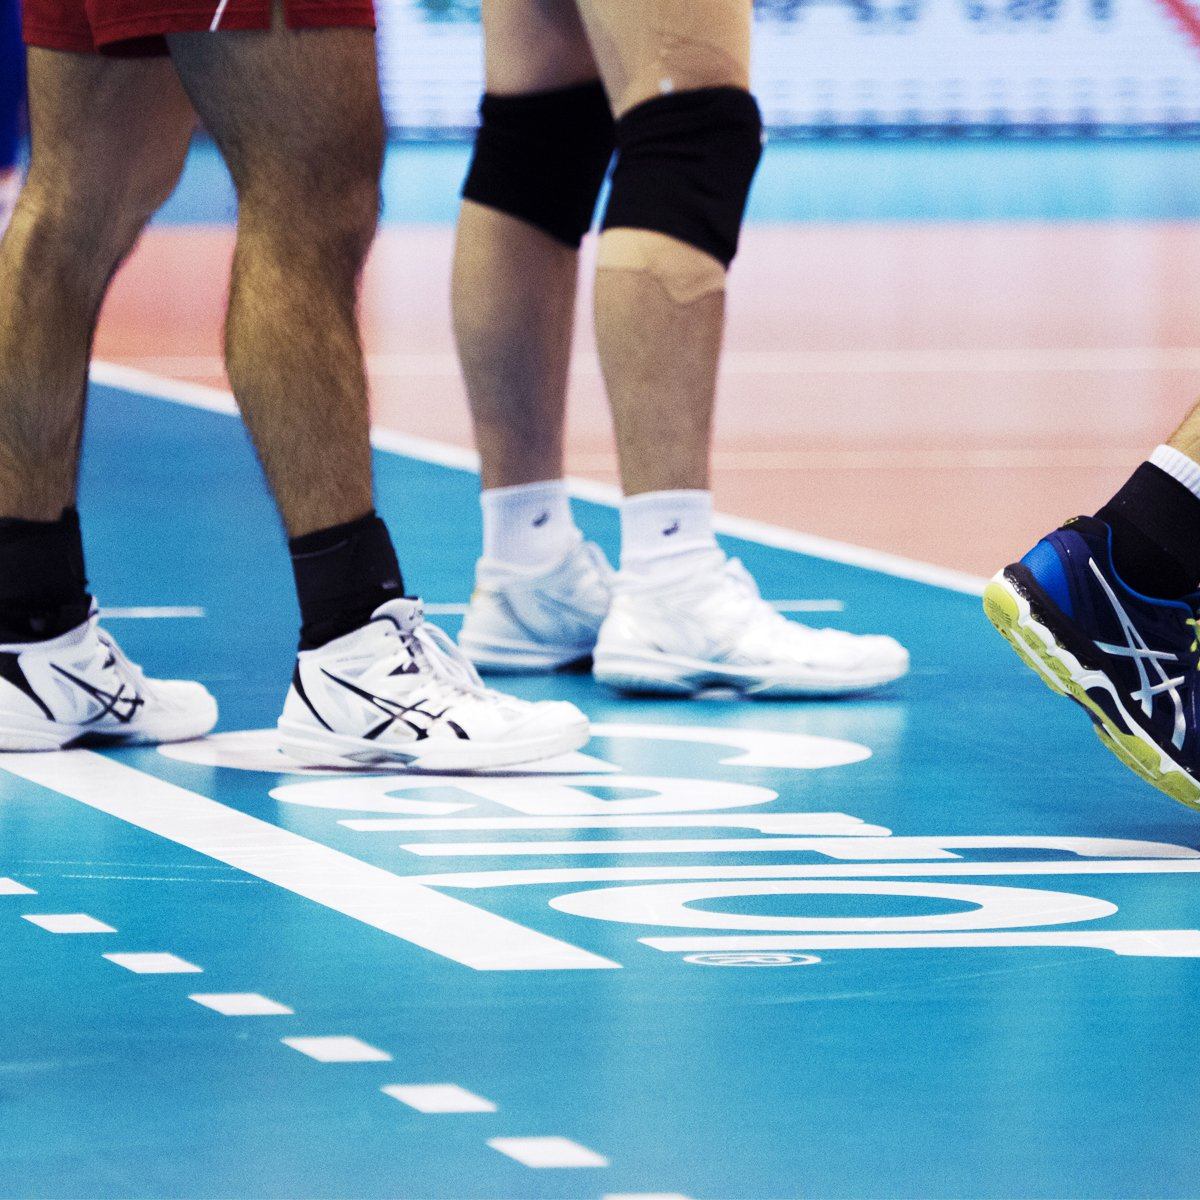 We are thrilled to supply flooring for the @FIVBVolleyball #FIVBMensU23, #FIVBGirlsU18 and #FIVBBoysU19 World Championships starting today. https://t.co/YlzwYL2CSL